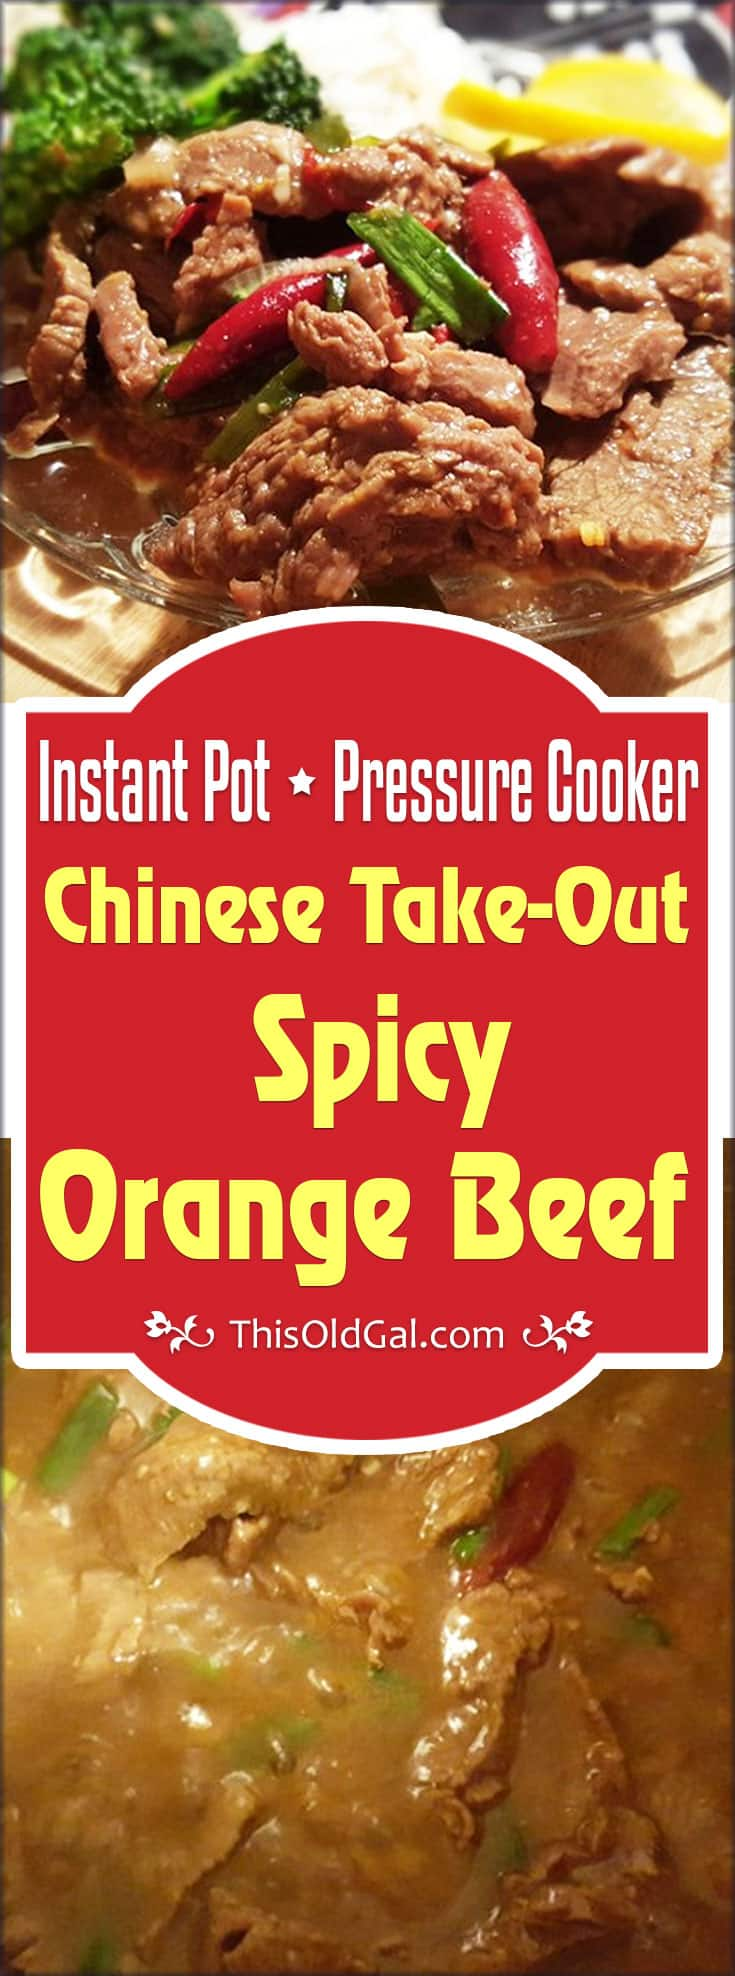 Pressure Cooker Chinese Take-Out Spicy Orange Beef (Instant Pot)